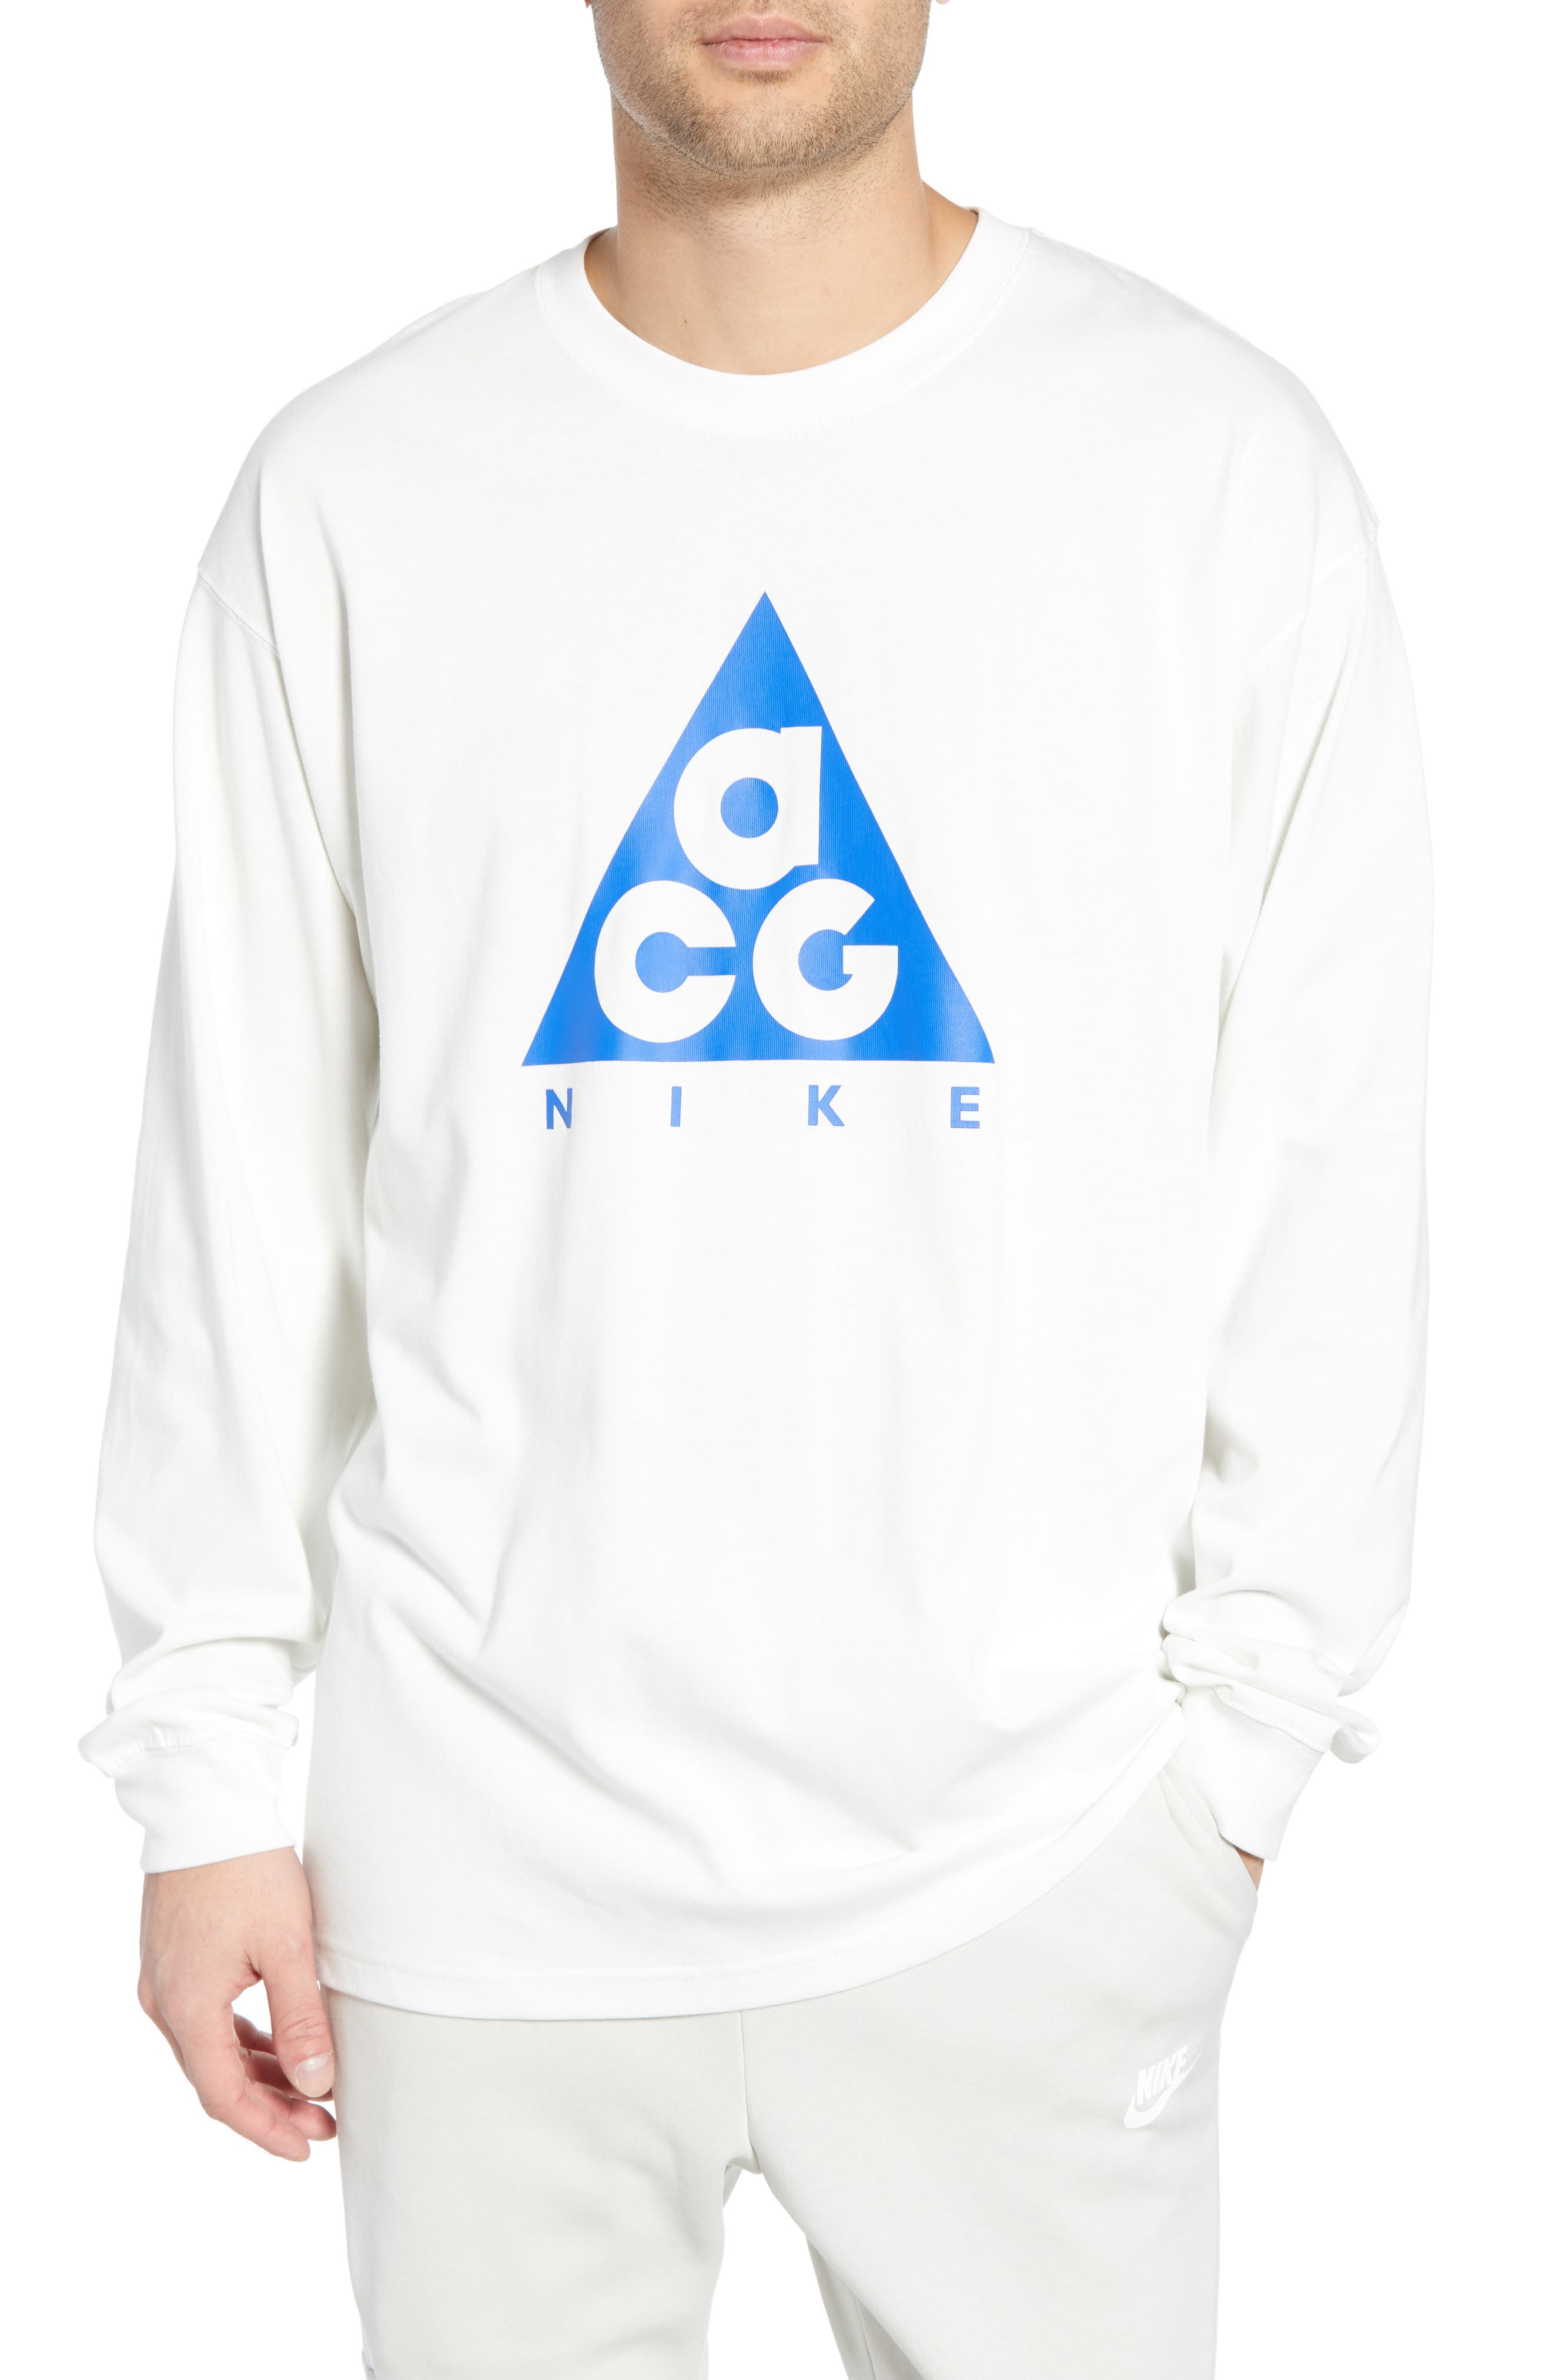 Nike Nrg All Conditions Gear Logo T-Shirt, White